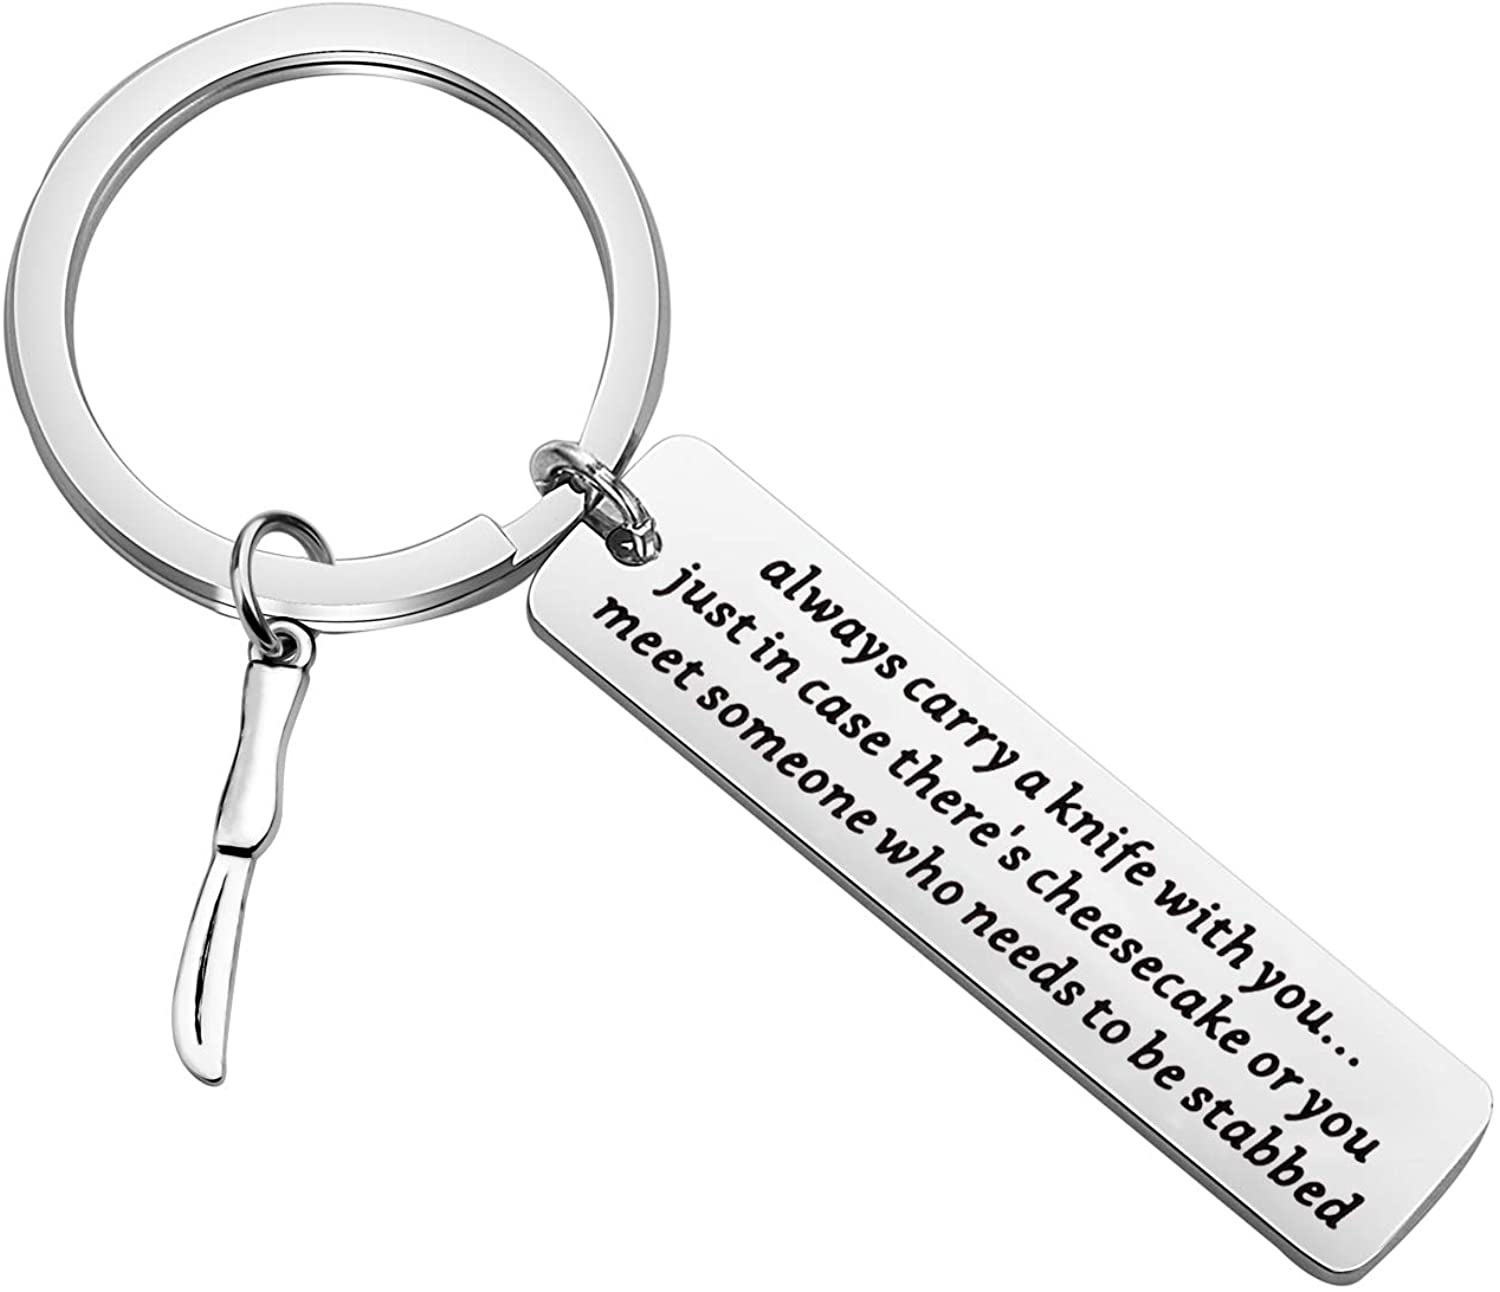 Gzrlyf Chef Keychain Funny Chef Gifts for Chefs Bakers Culinary Student Cooking Lover